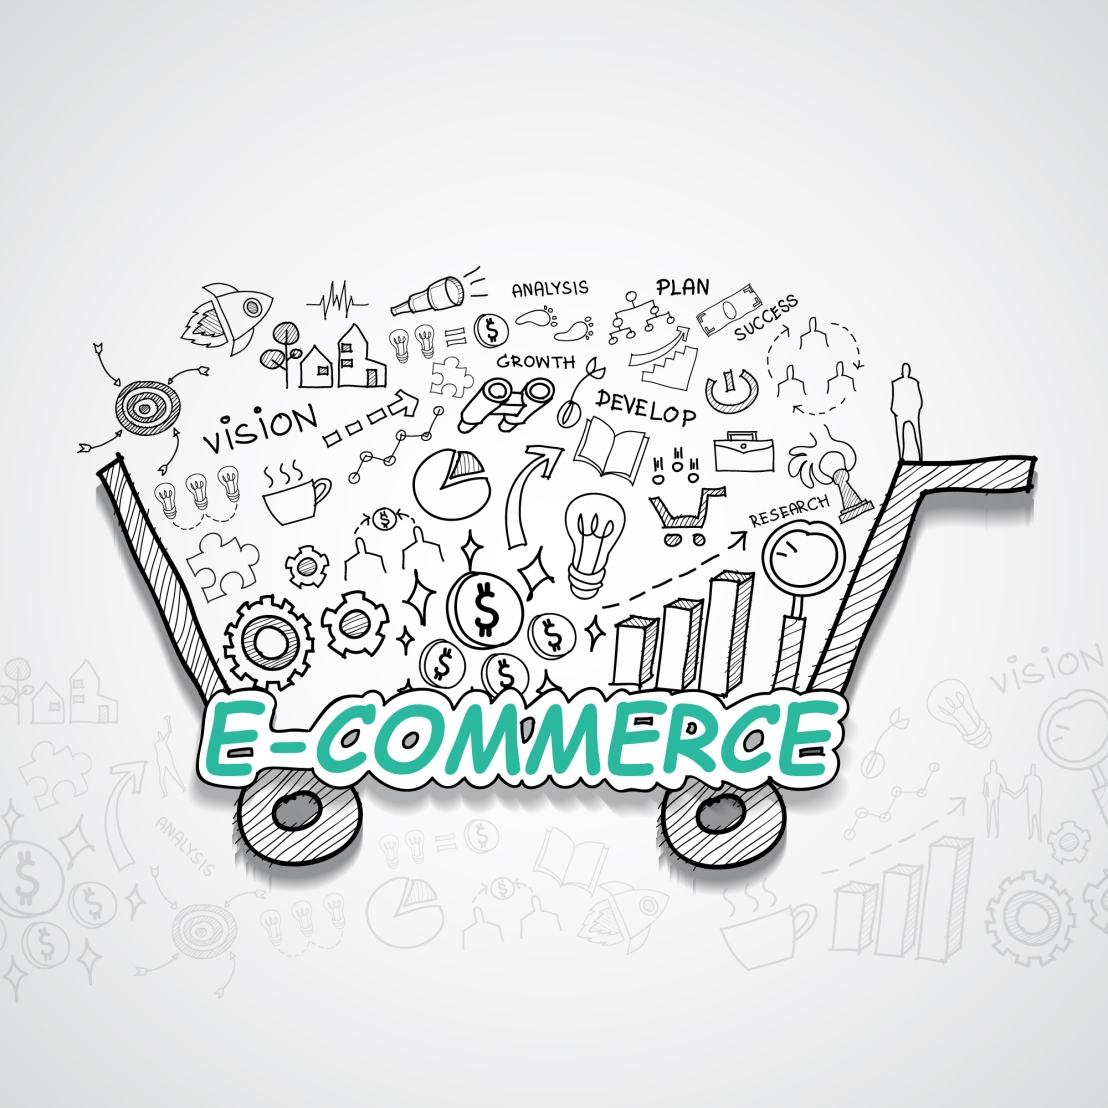 What is a Better Choice for an eCommerce Website – Custom or Open Source Platform?